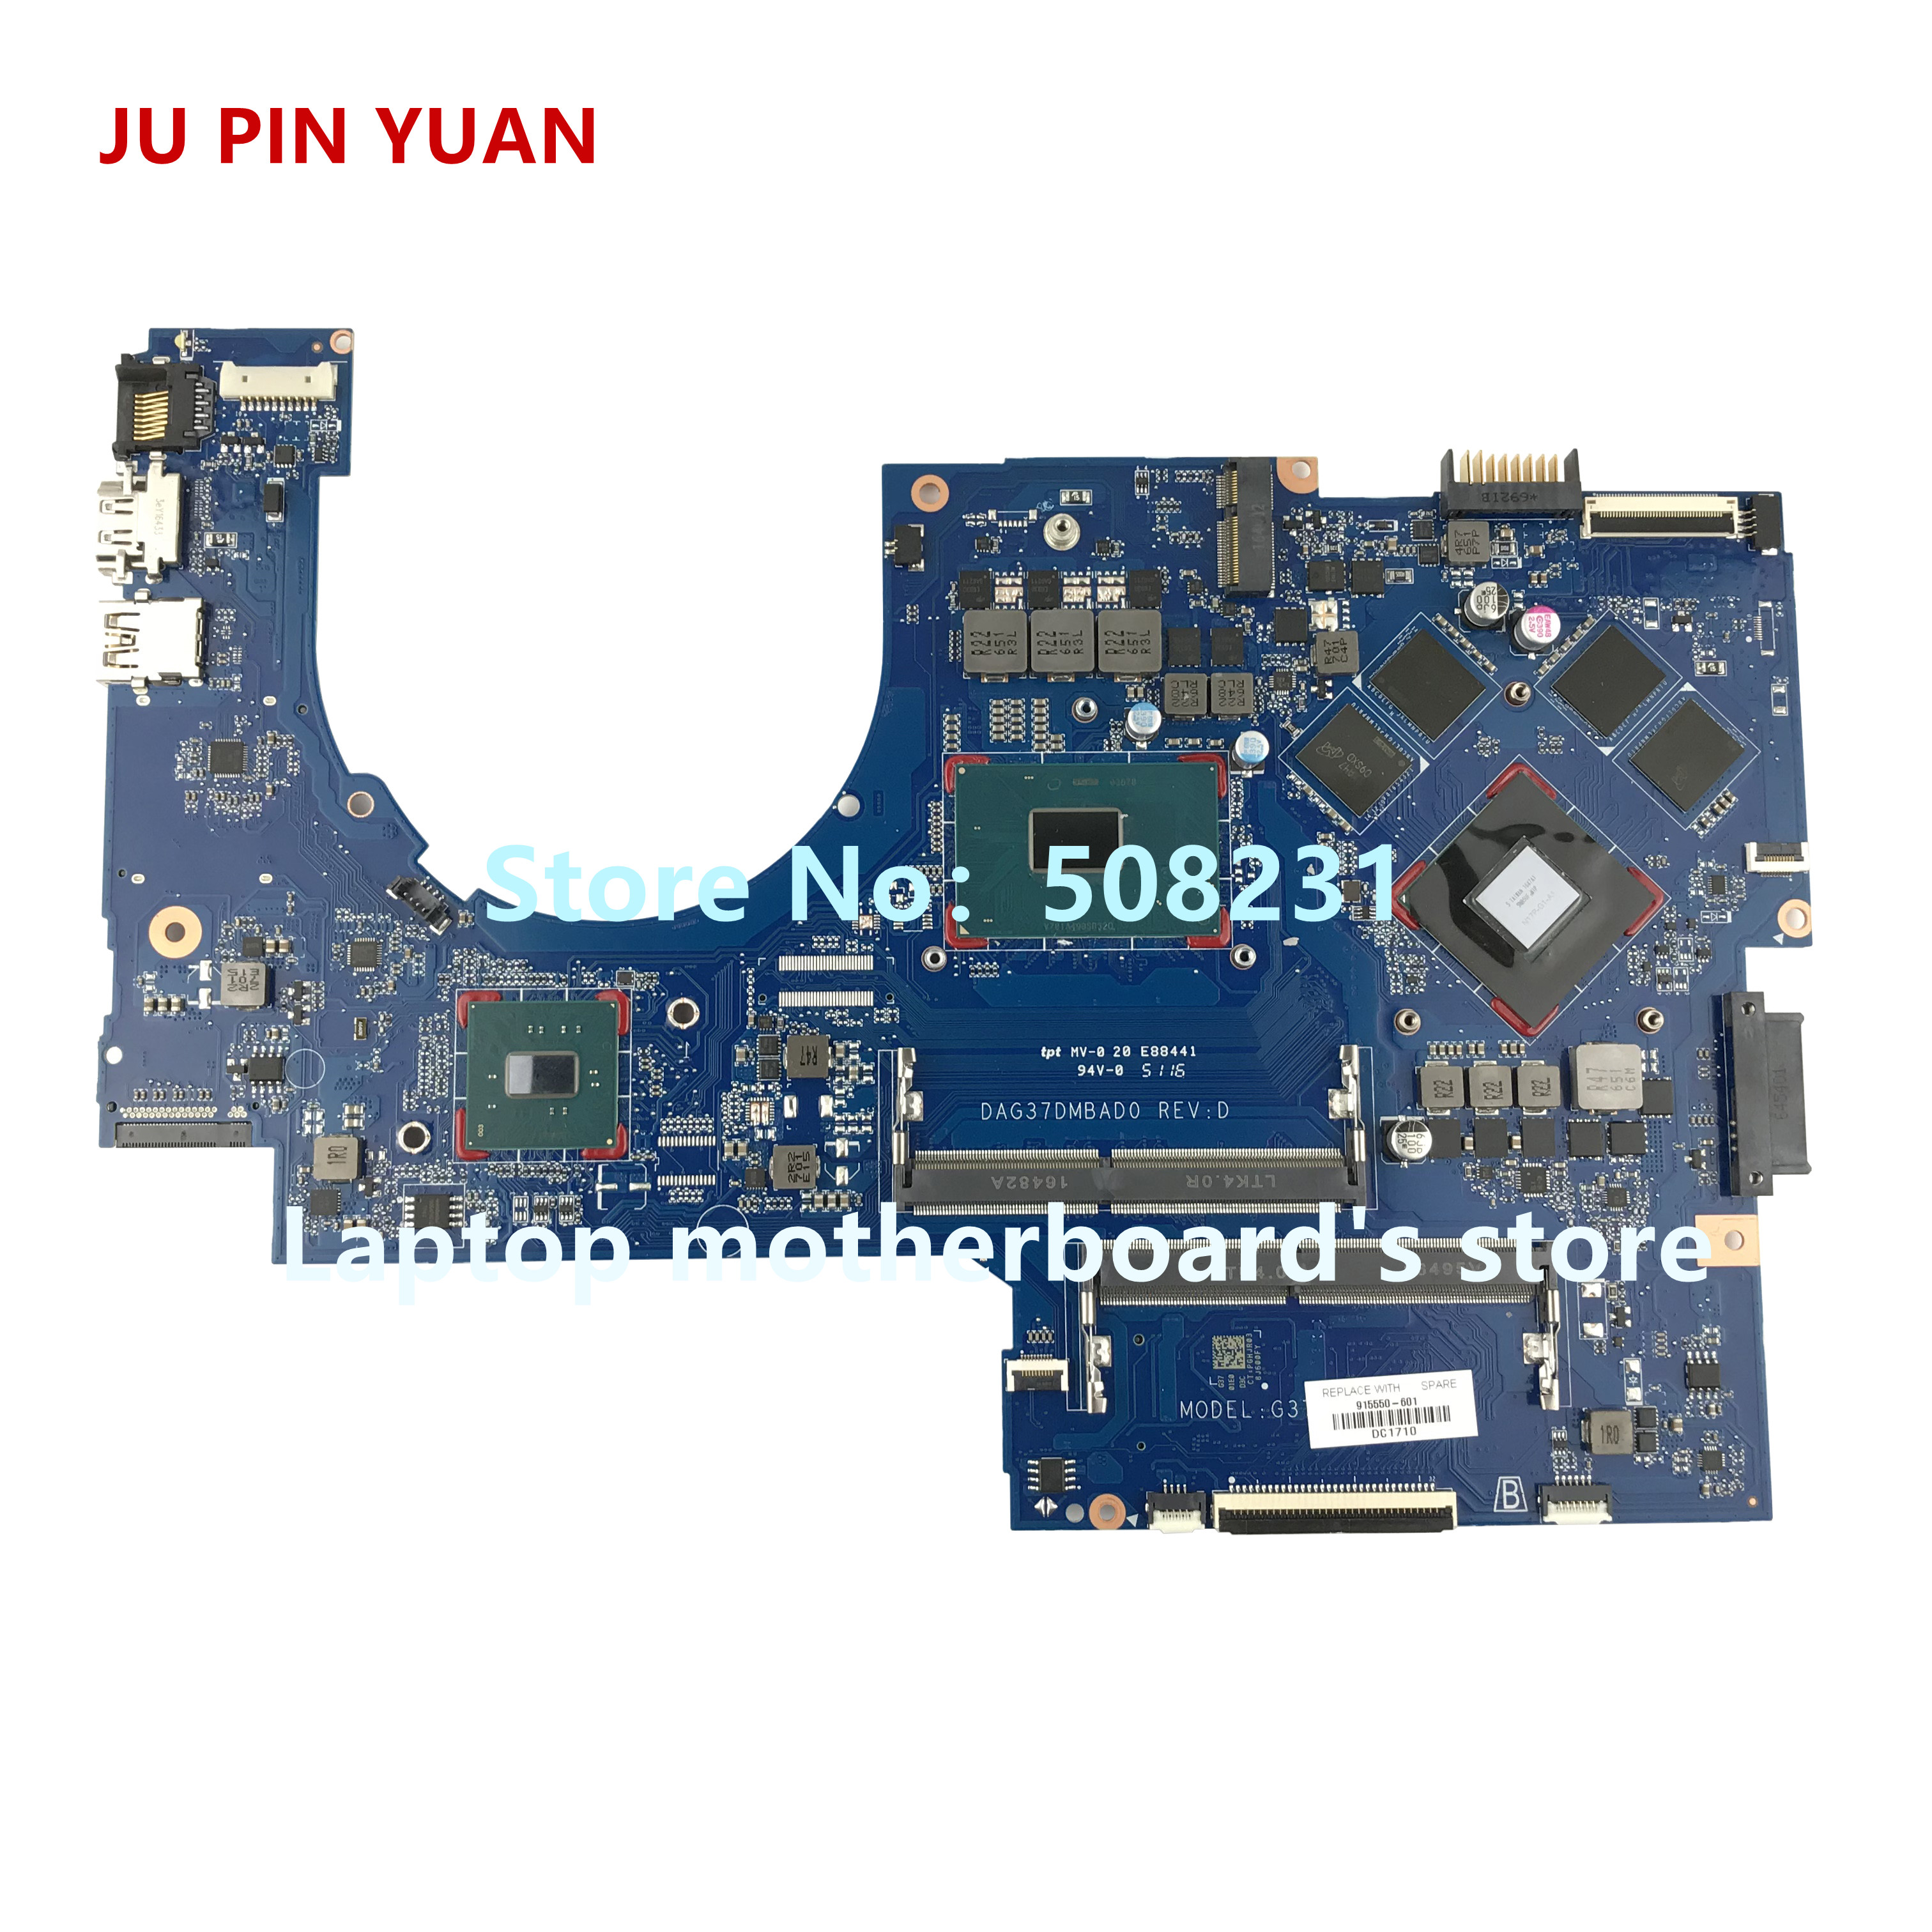 JU PIN YUAN 915550-601 G37D DAG37DMBAD0 915550-501 for HP NOTEBOOK 17-W 17T-W laptop motherboard with 1050Ti 4GB i7-7700HQ